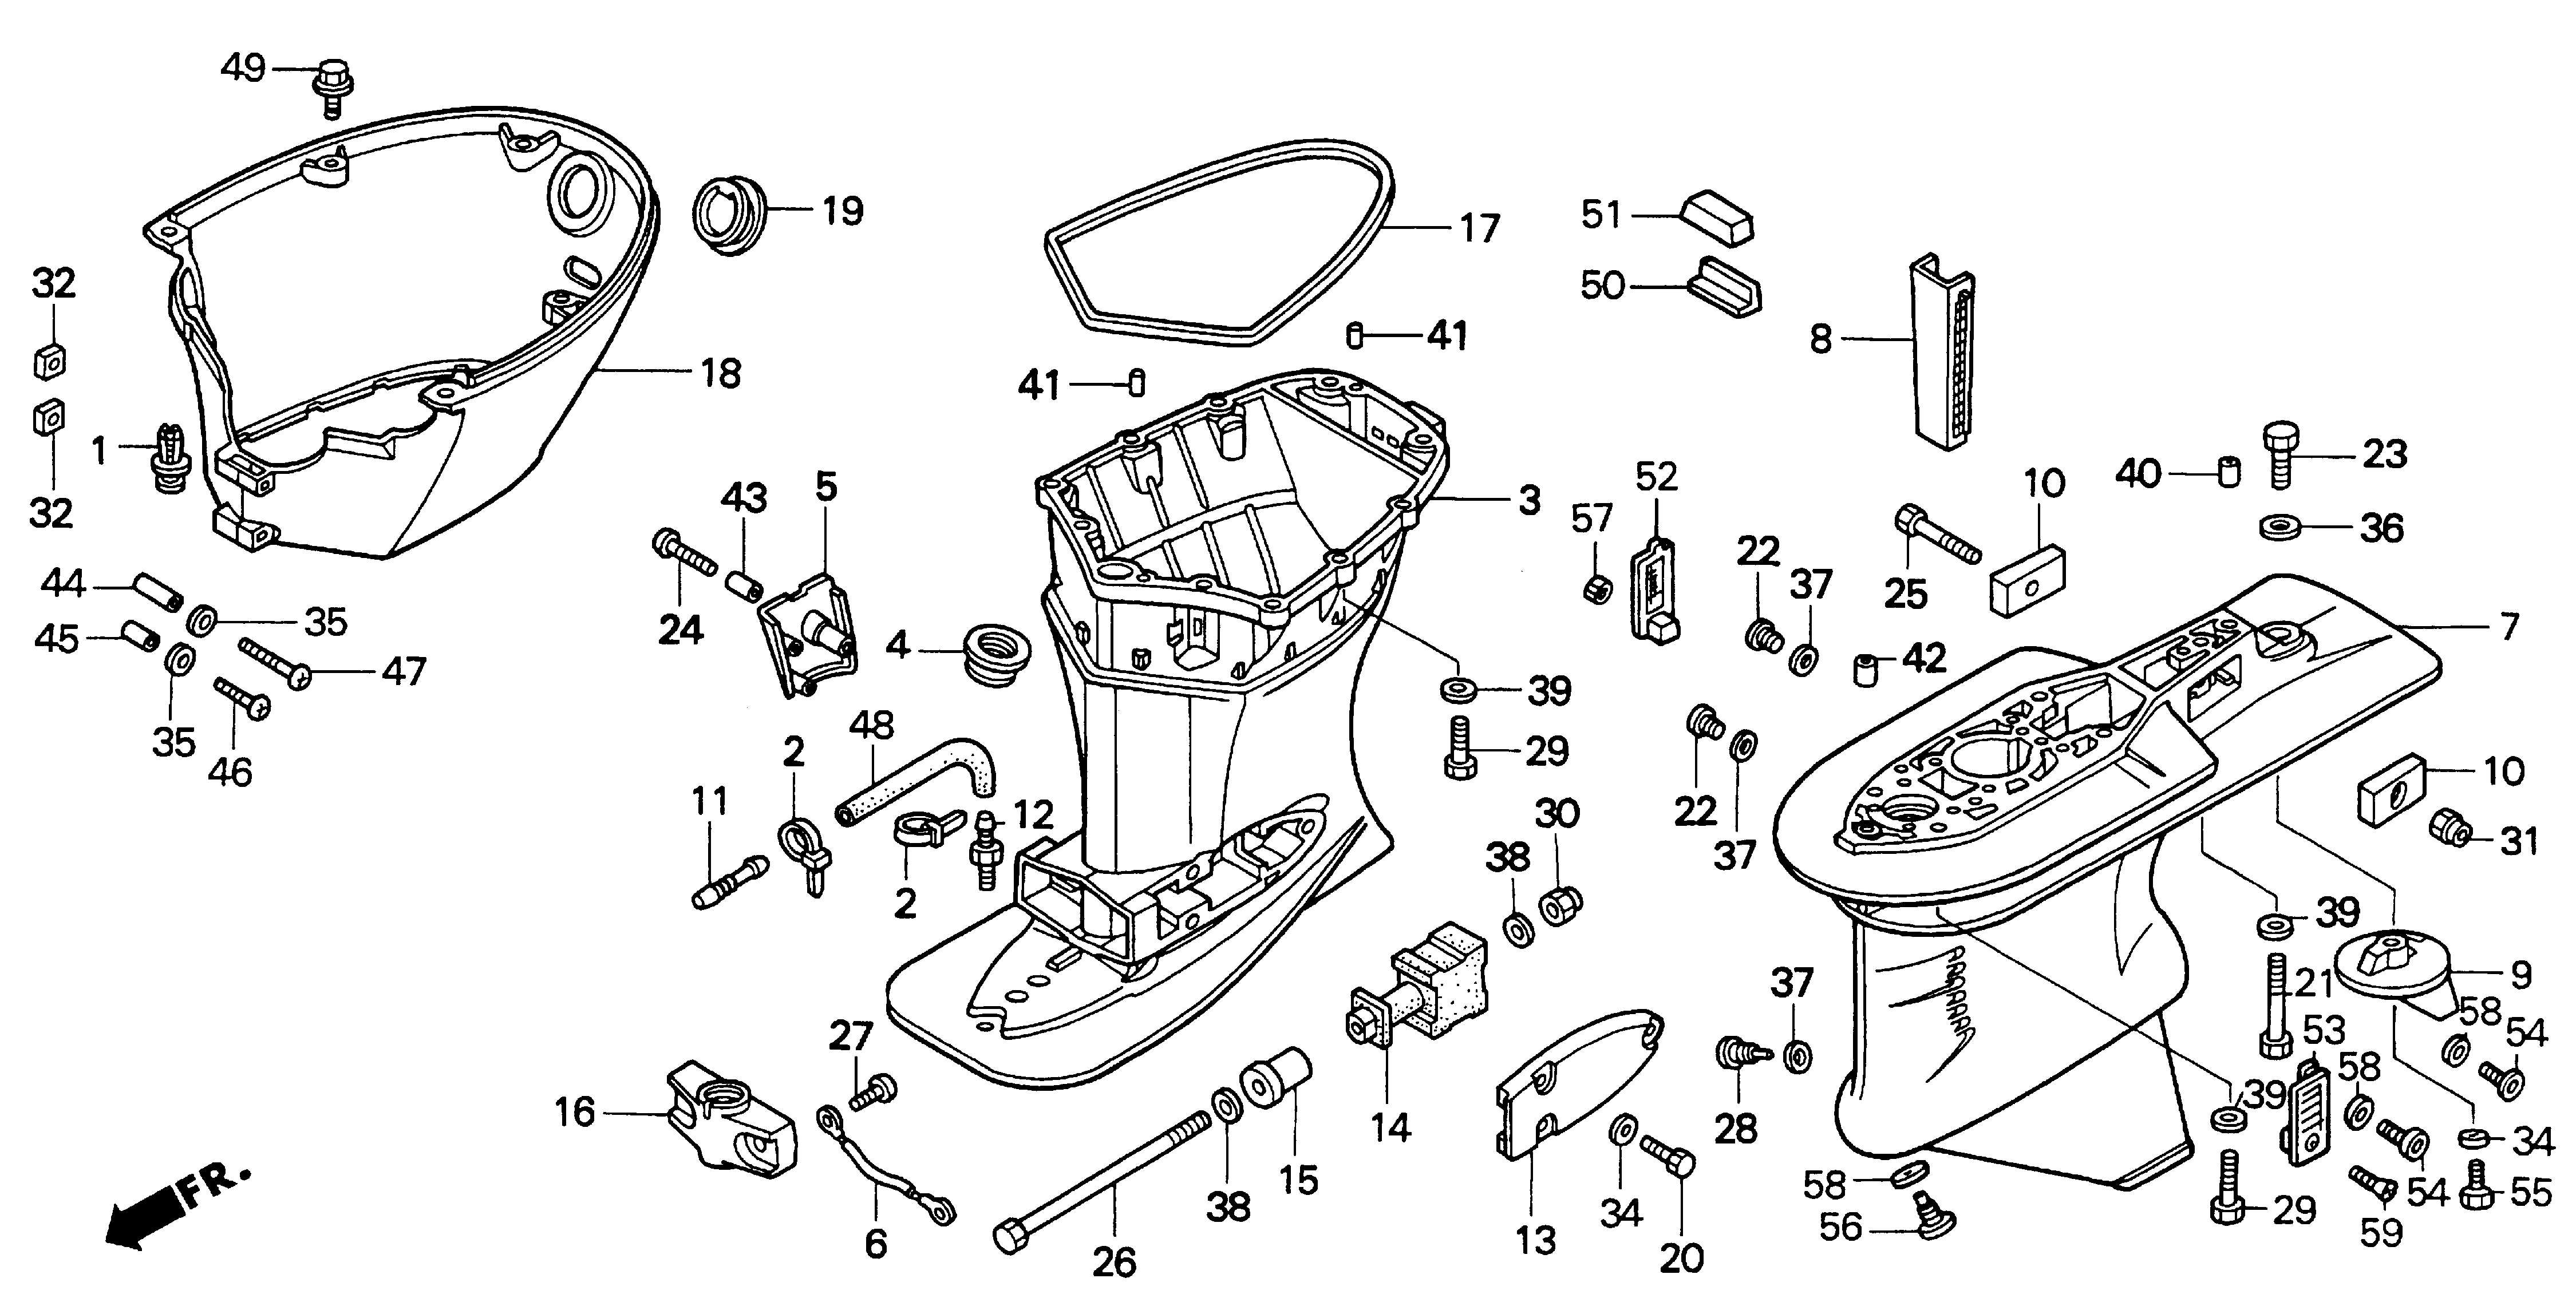 Honda Outboard Motor Parts Diagram Wiring Diagrams Of Pre1997 Bf50a Lra Engine Lower Case Bf90 Imageresizertool Com 4 Stroke Bf8a